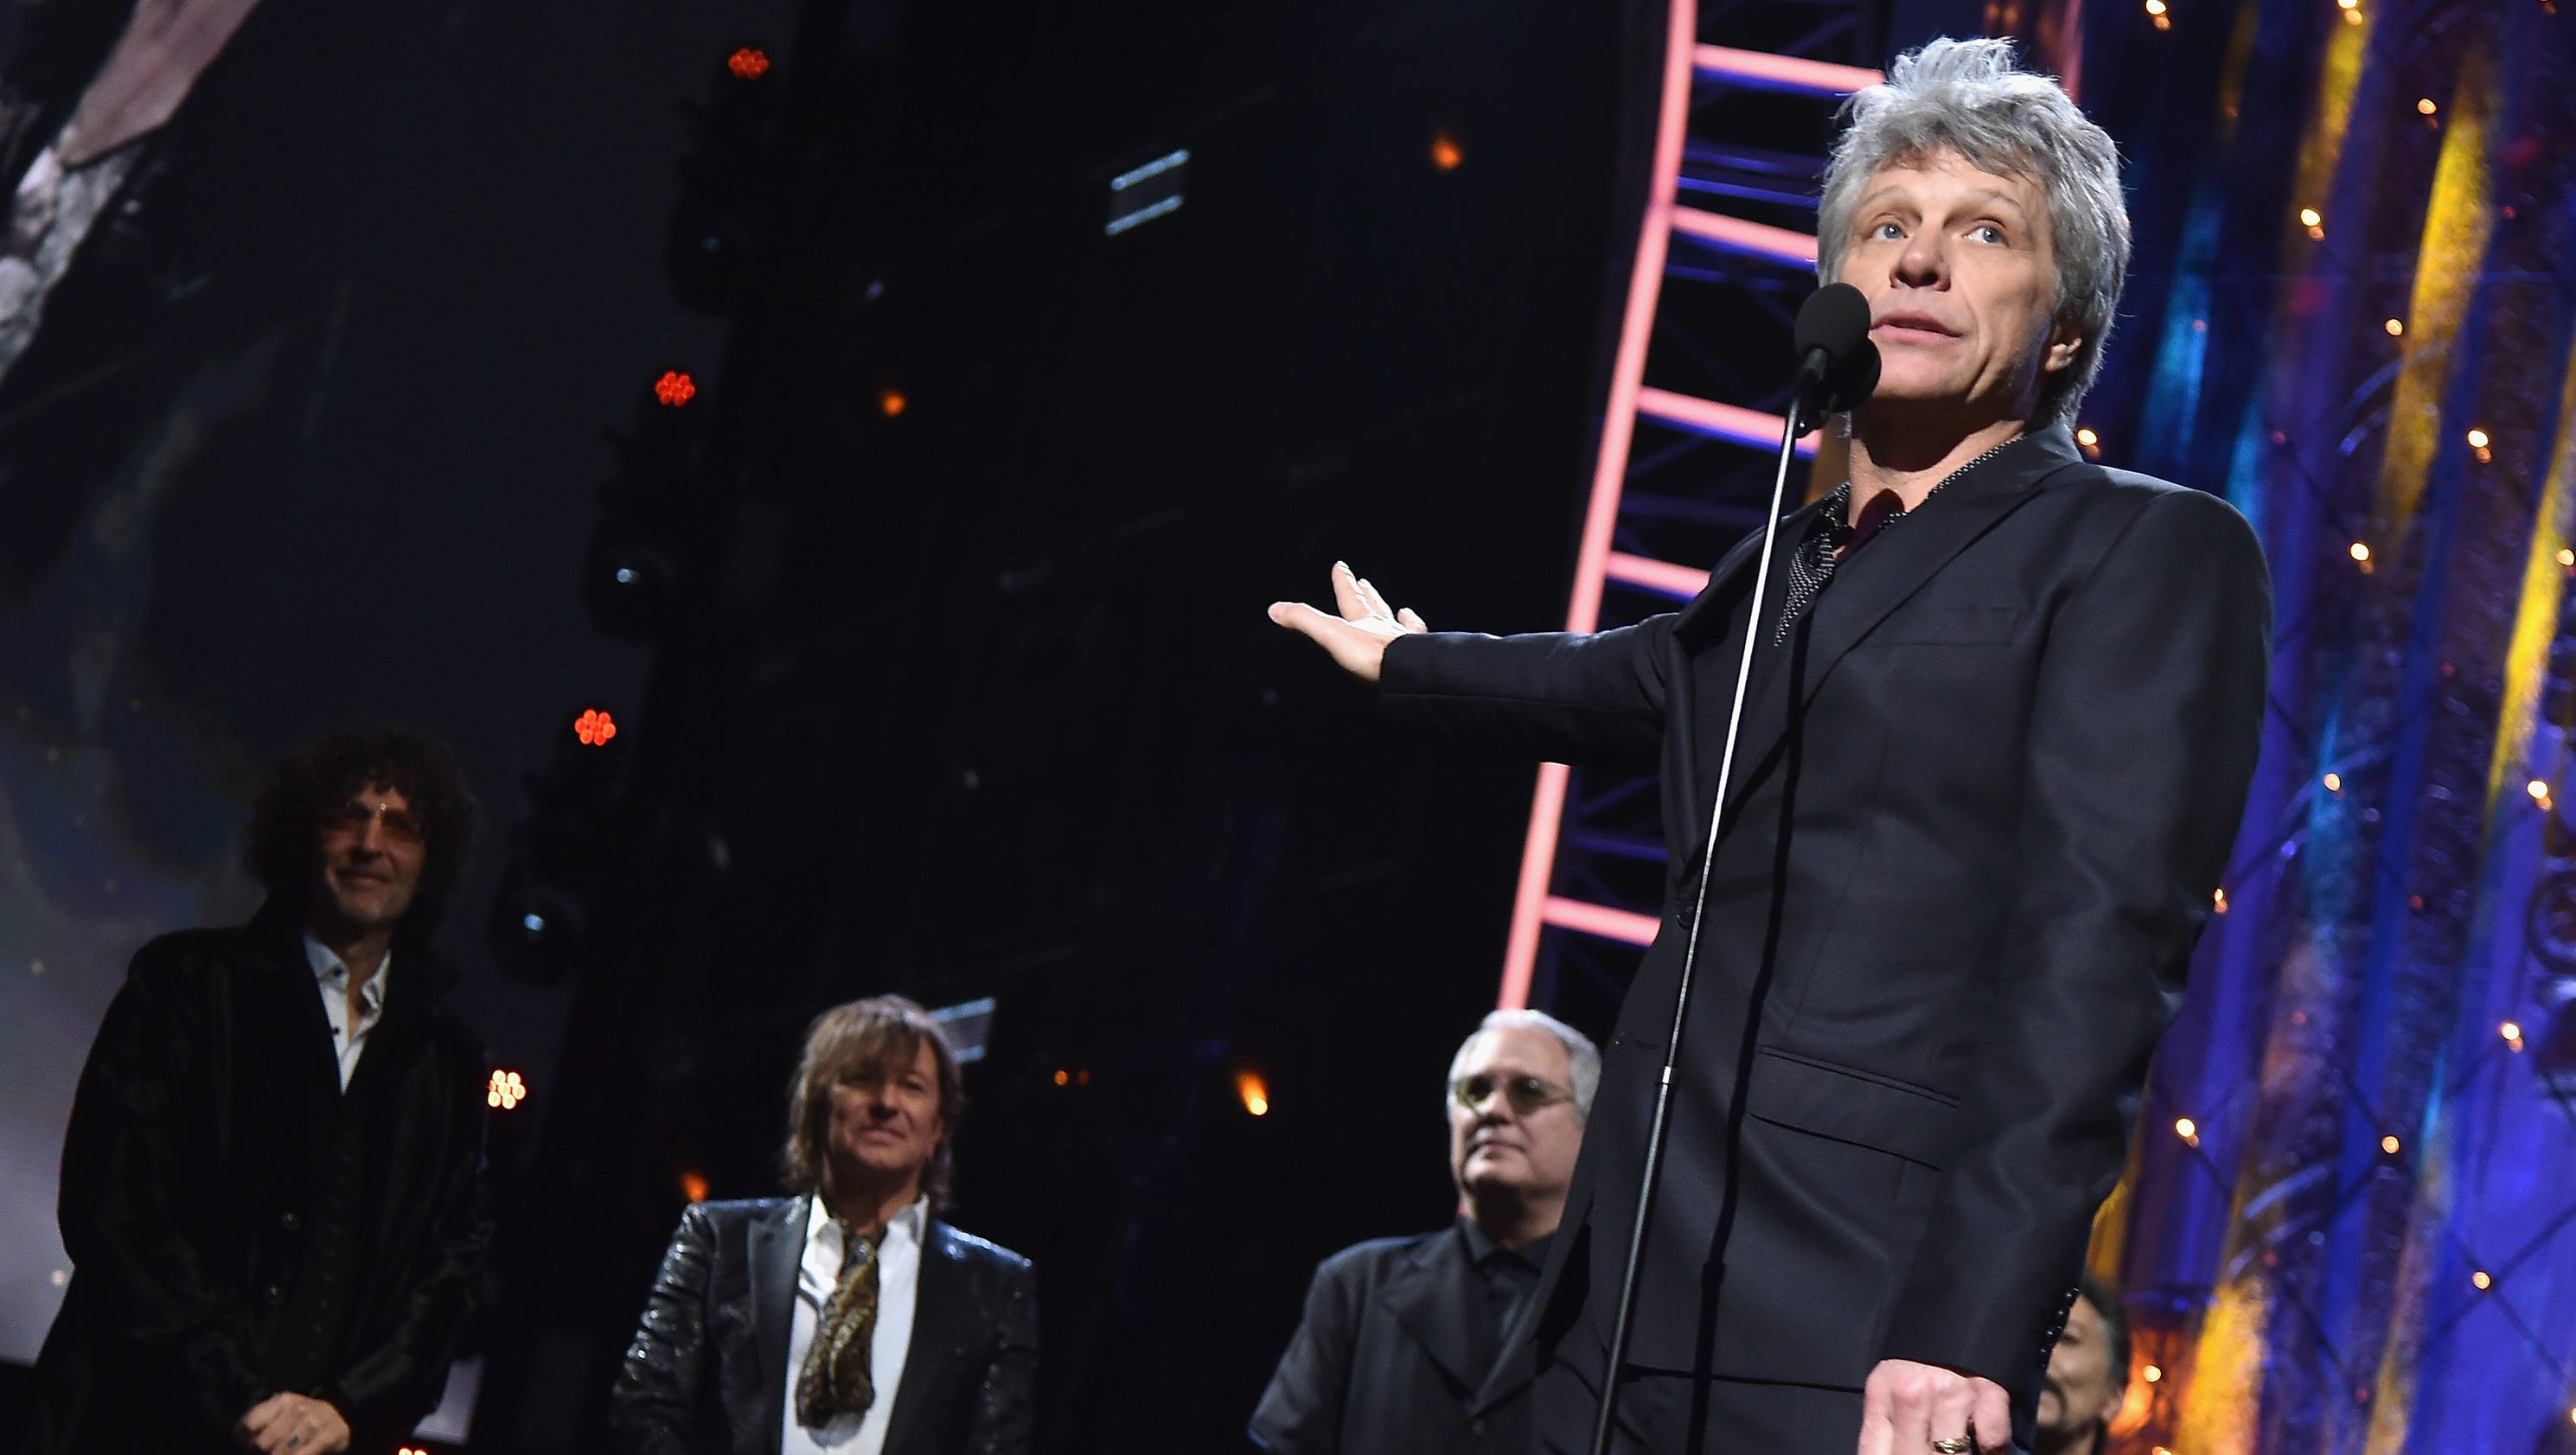 rock and roll hall of fame 2018 induction inside the ceremony